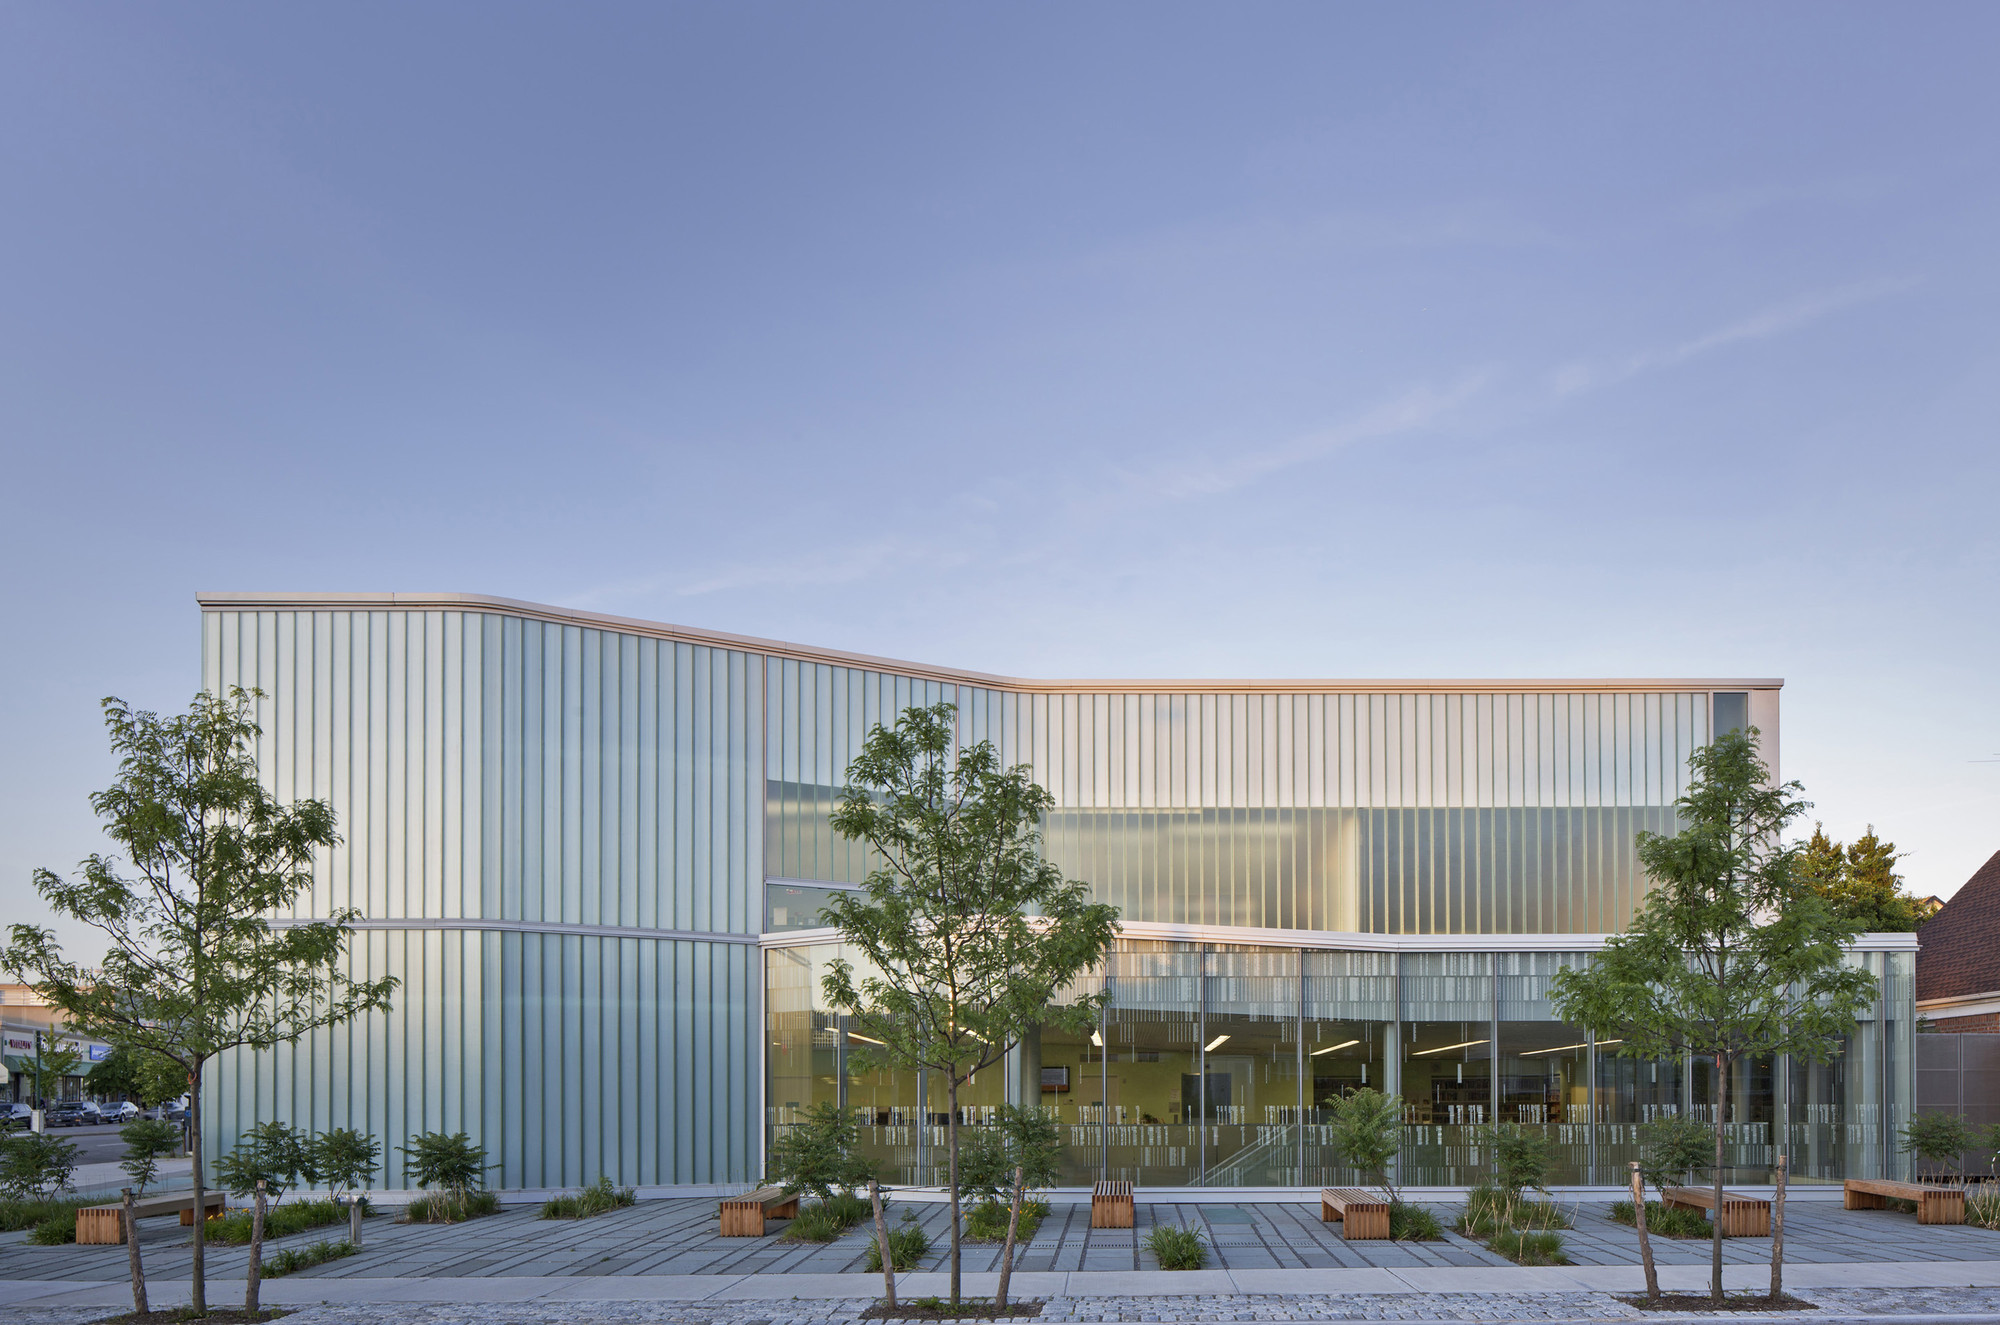 Glen Oaks Branch Library  / Marble Fairbanks, © Eduard Hueber